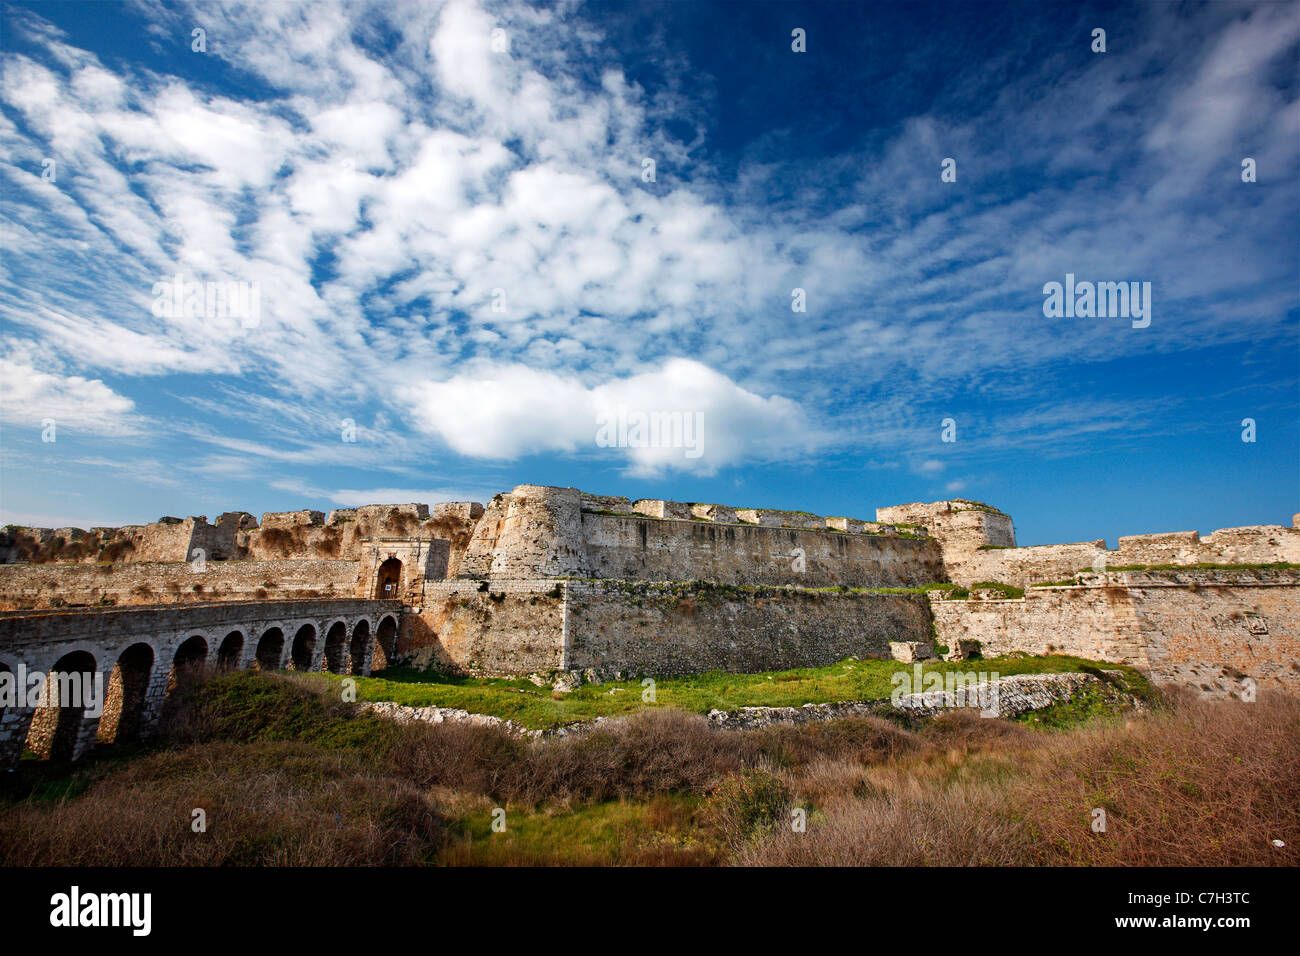 The stone bridge that crosses the ditch and leads to the Venetian castle of Methoni, Messinia, Peloponnese, Greece - Stock Image